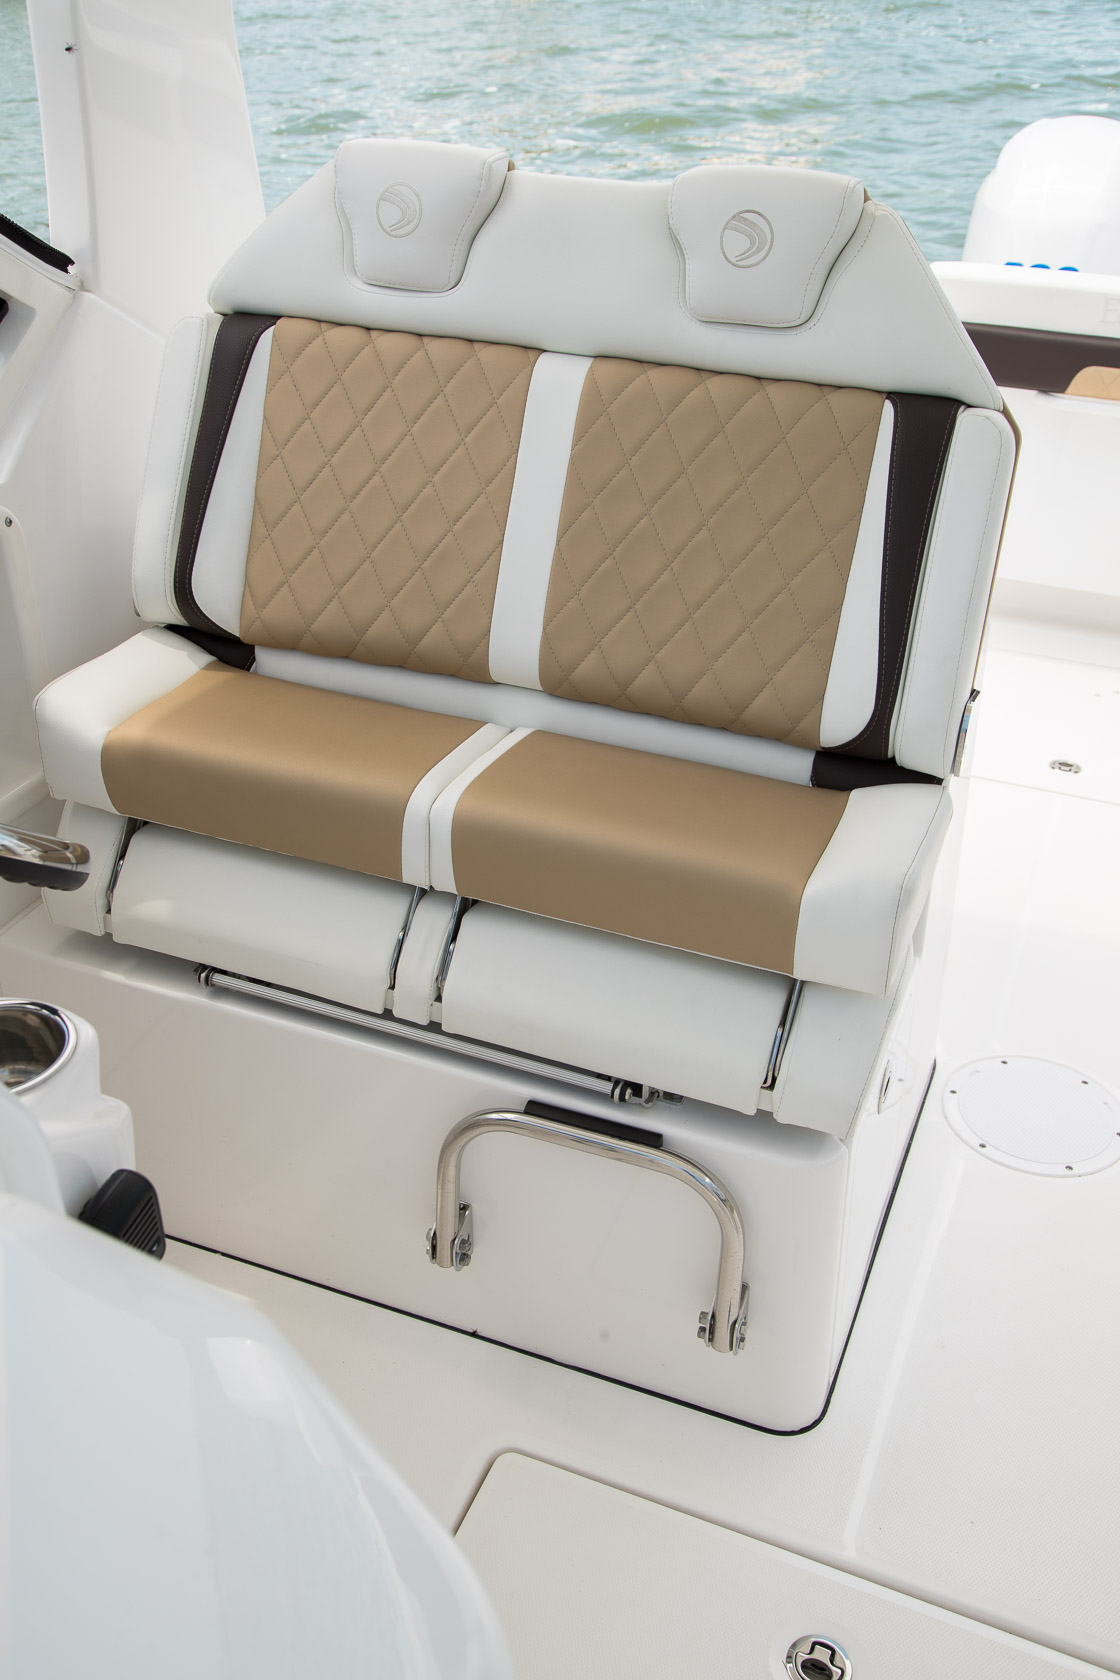 Image 1662: edgewater 262cx double helm seat